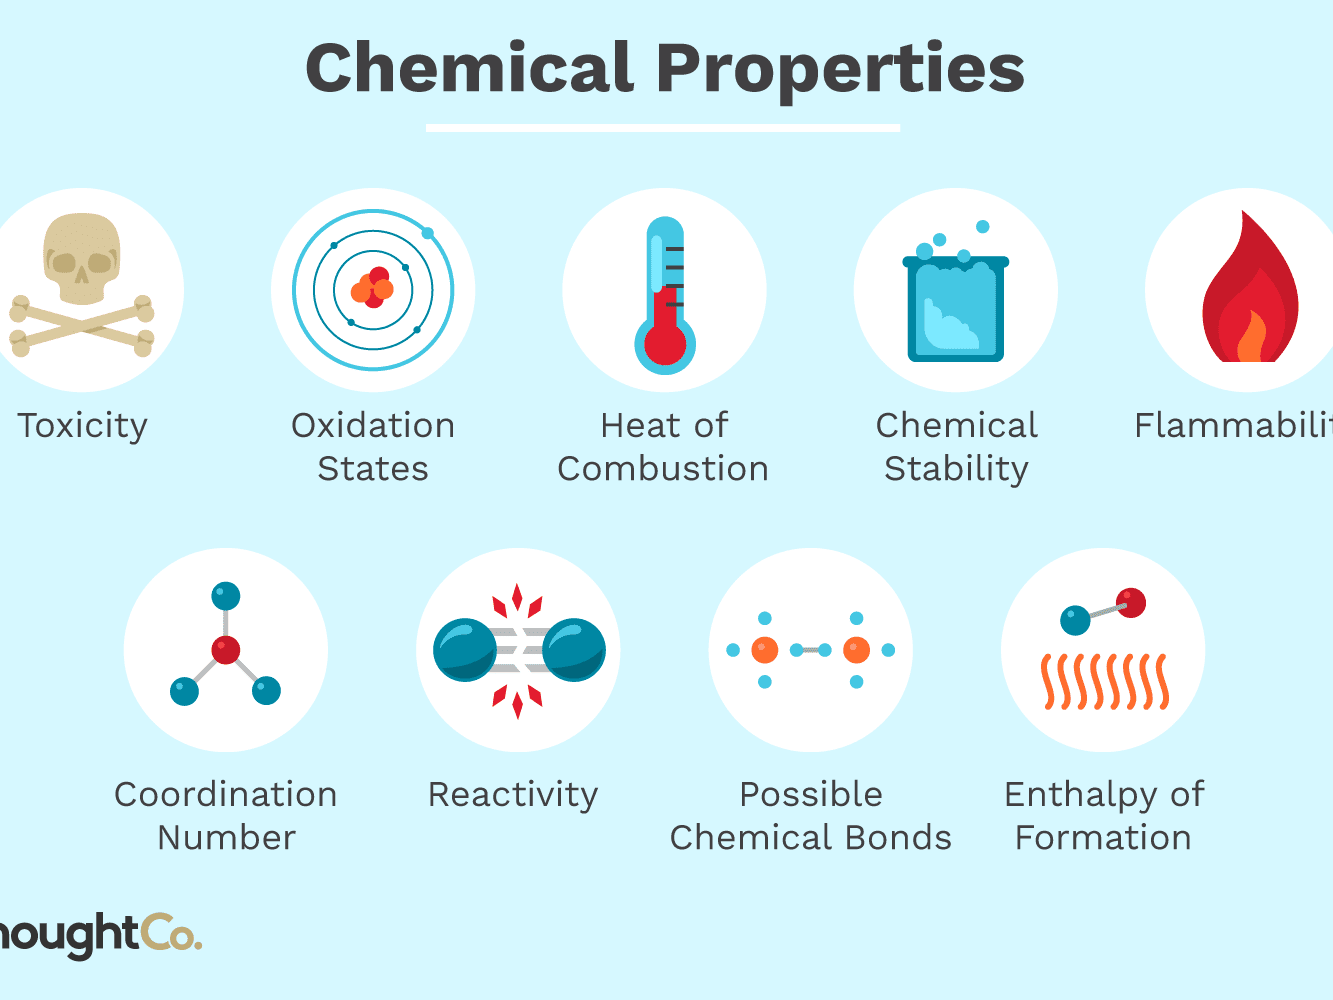 What Biological Process Includes Chemical Reactions That